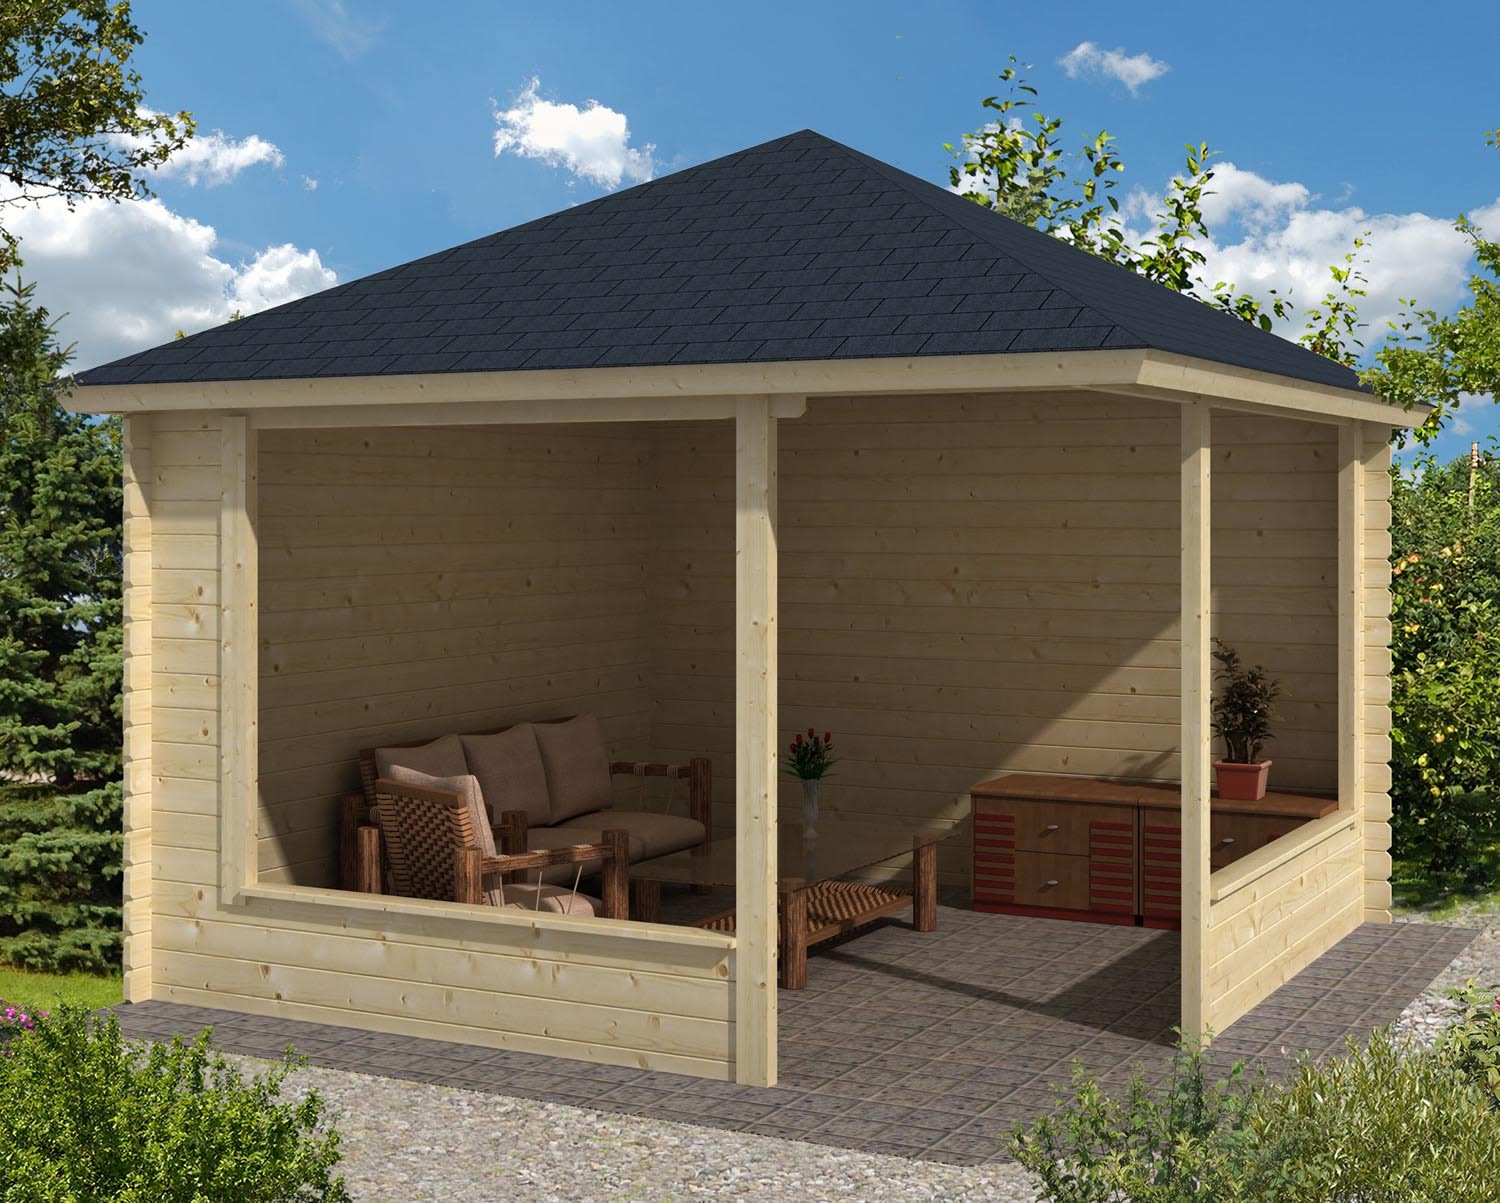 Rectangular Gazebo Plans Free Pergola Design Ideas